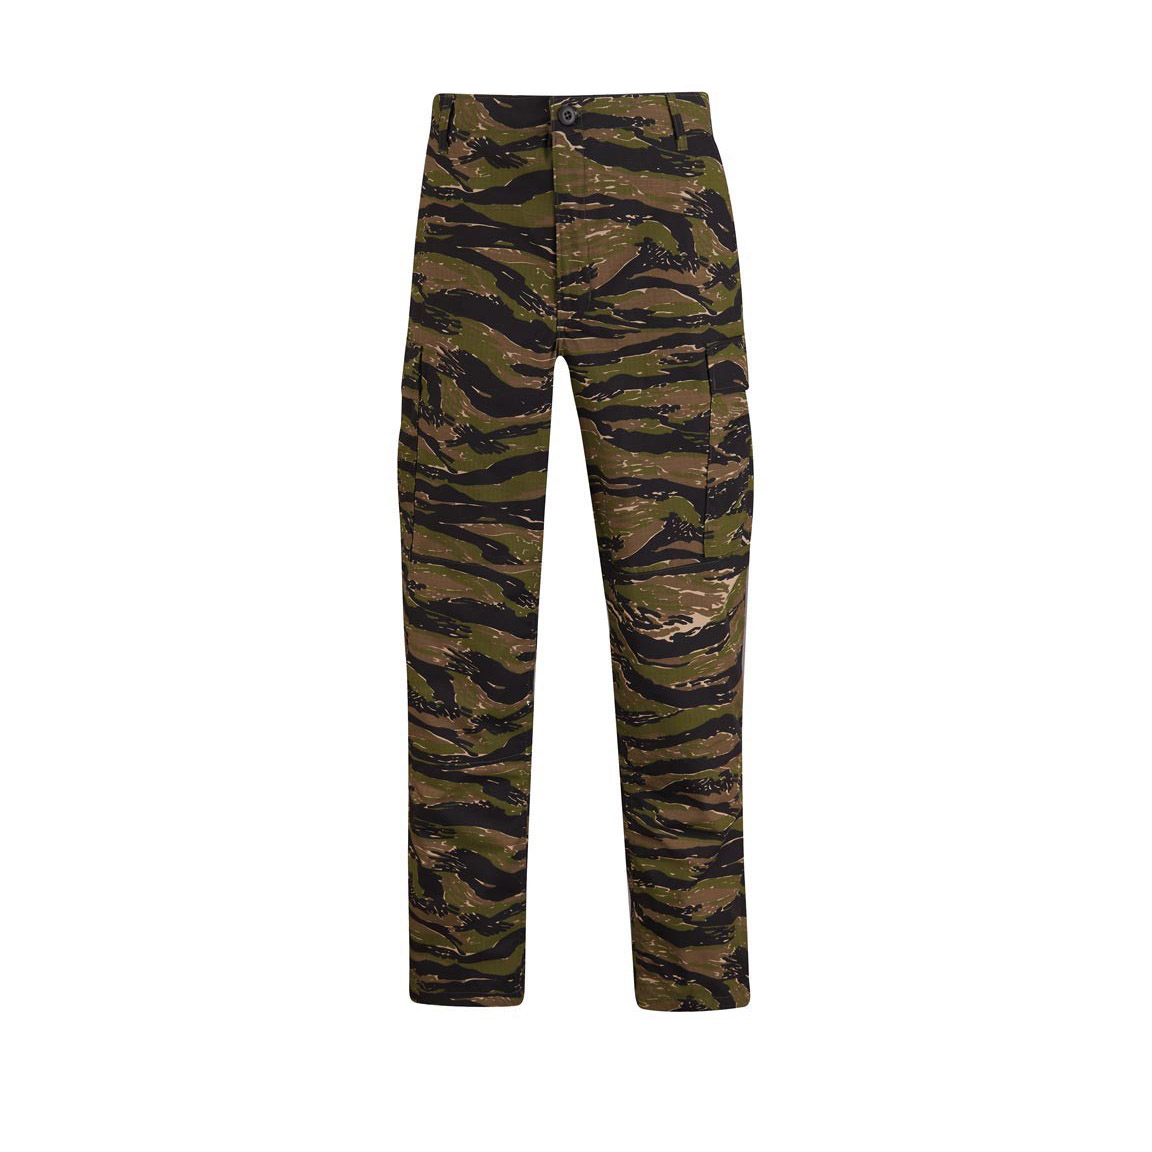 Genuine Gear BDU Cotton Poly Ripstop Military Tactical Trouser Pants